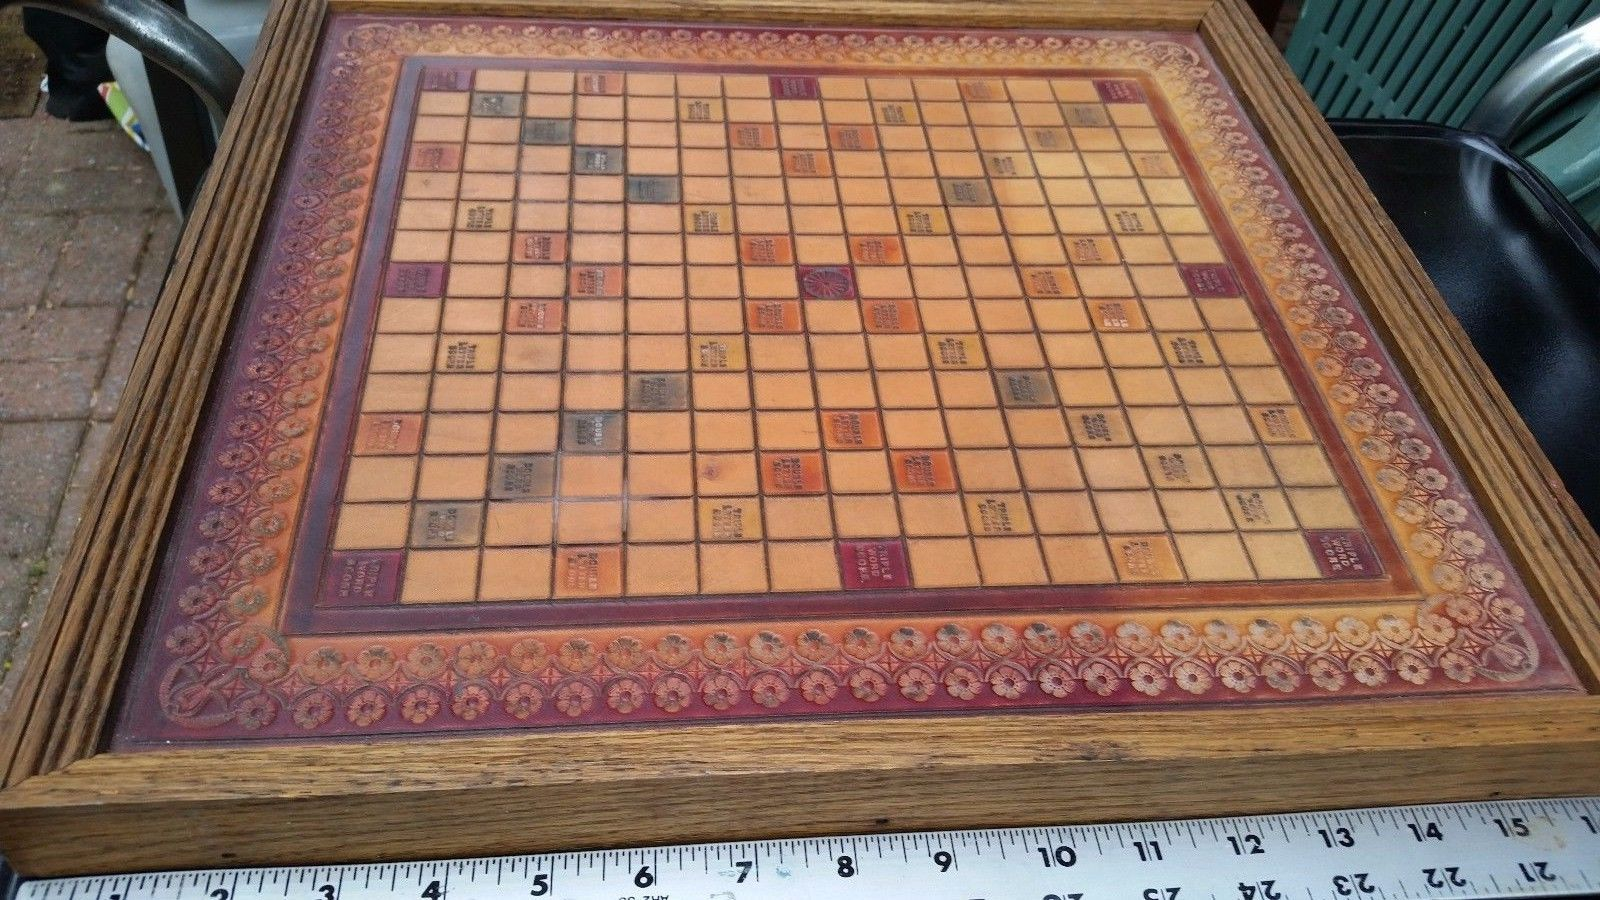 Dating scrabble boards wooden